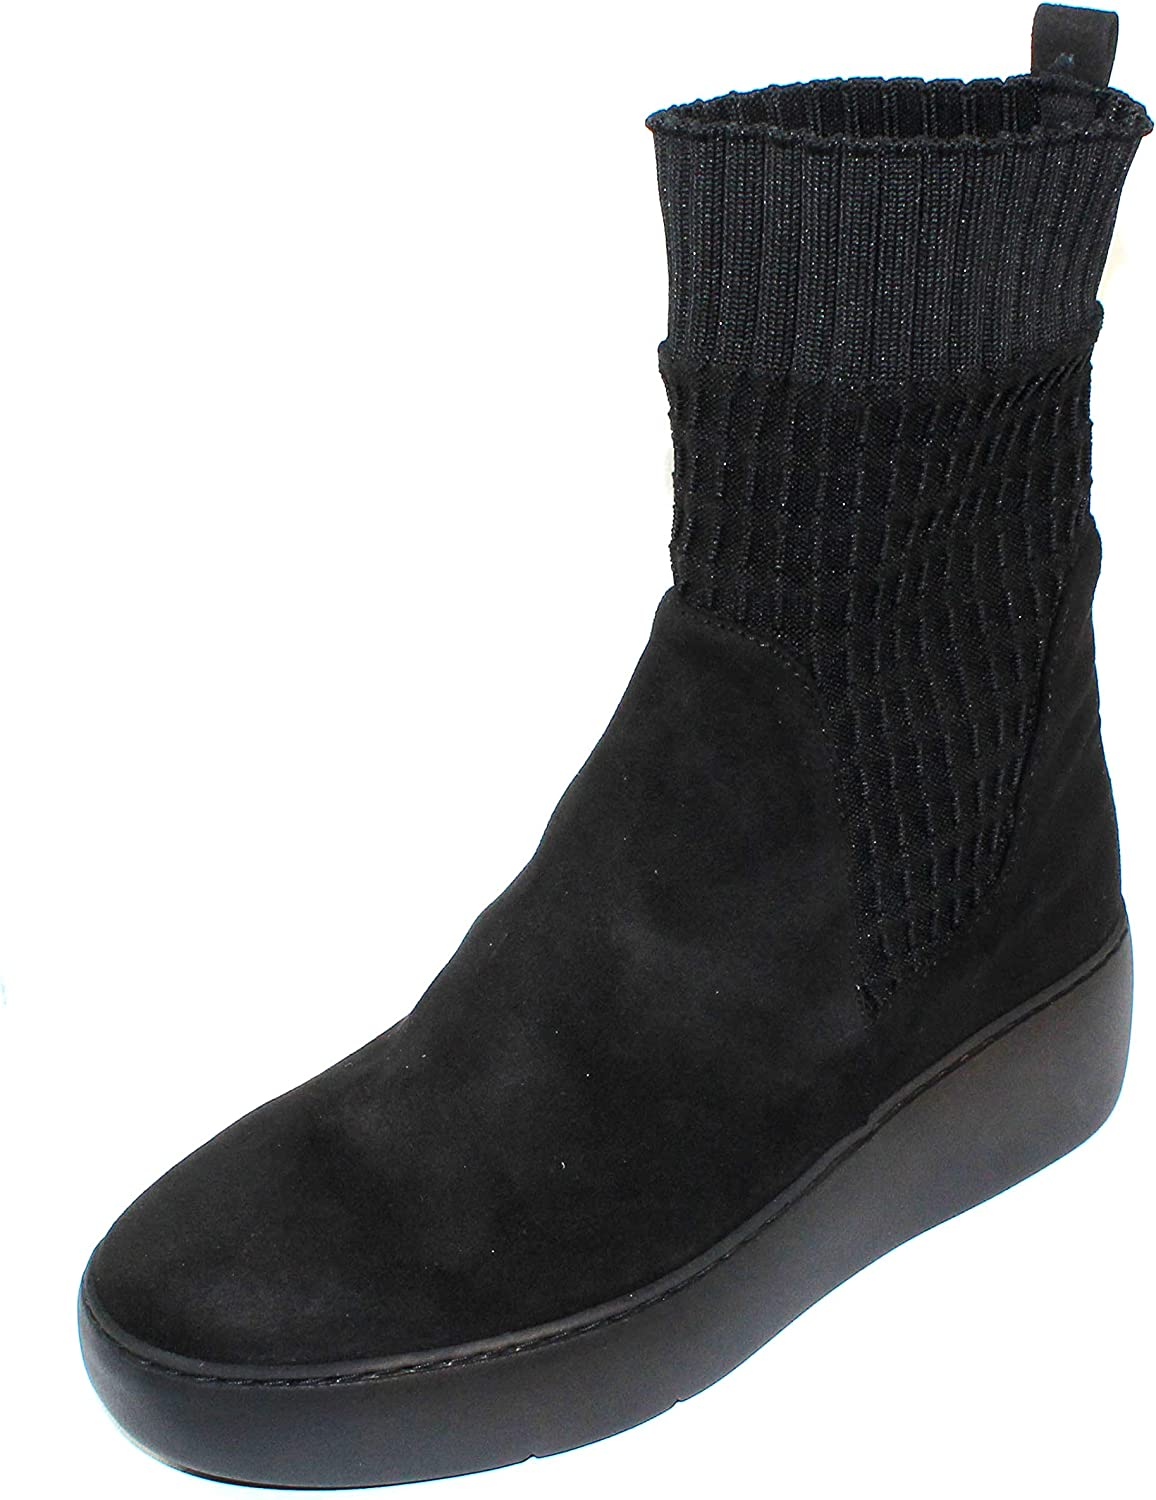 Wonders Women's A-8310 in Black Suede Stretch Fabric - Size 39 M